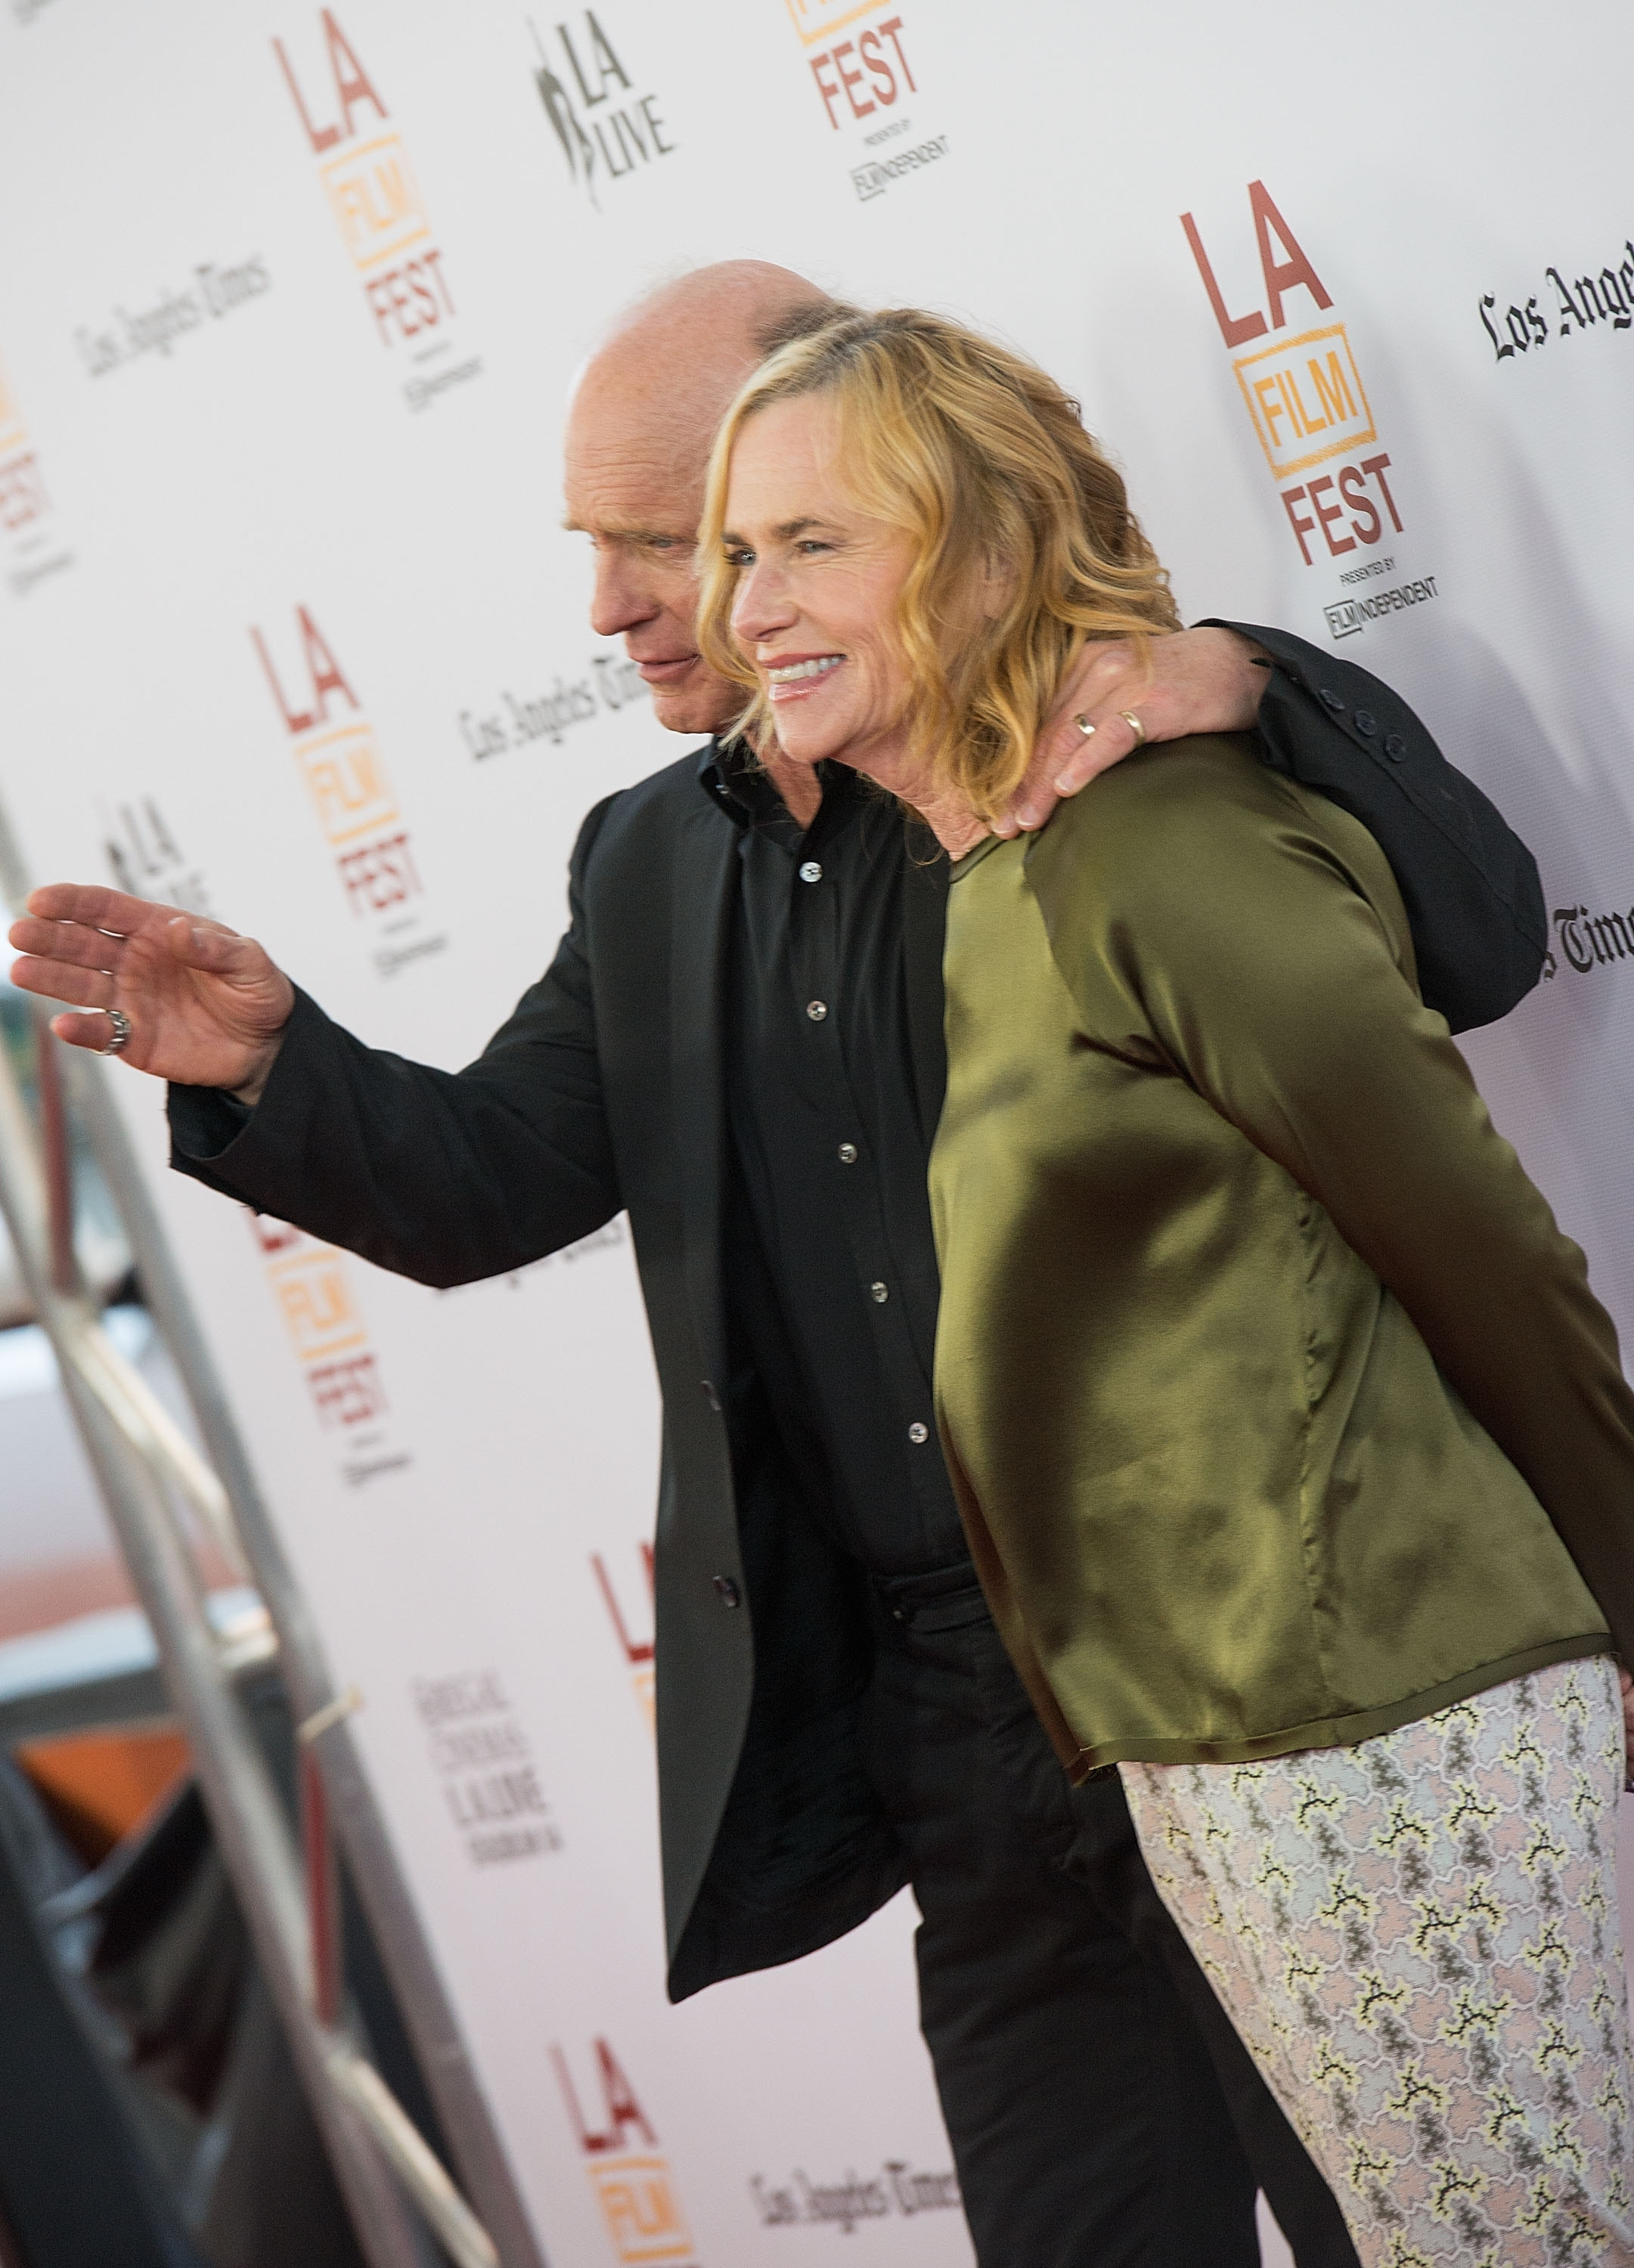 """Out on the town: Actors Ed Harris and Amy Madigan were seen at the Los Angeles Film Festival this week for the premiere of  the movie """"Snowpiercer."""""""